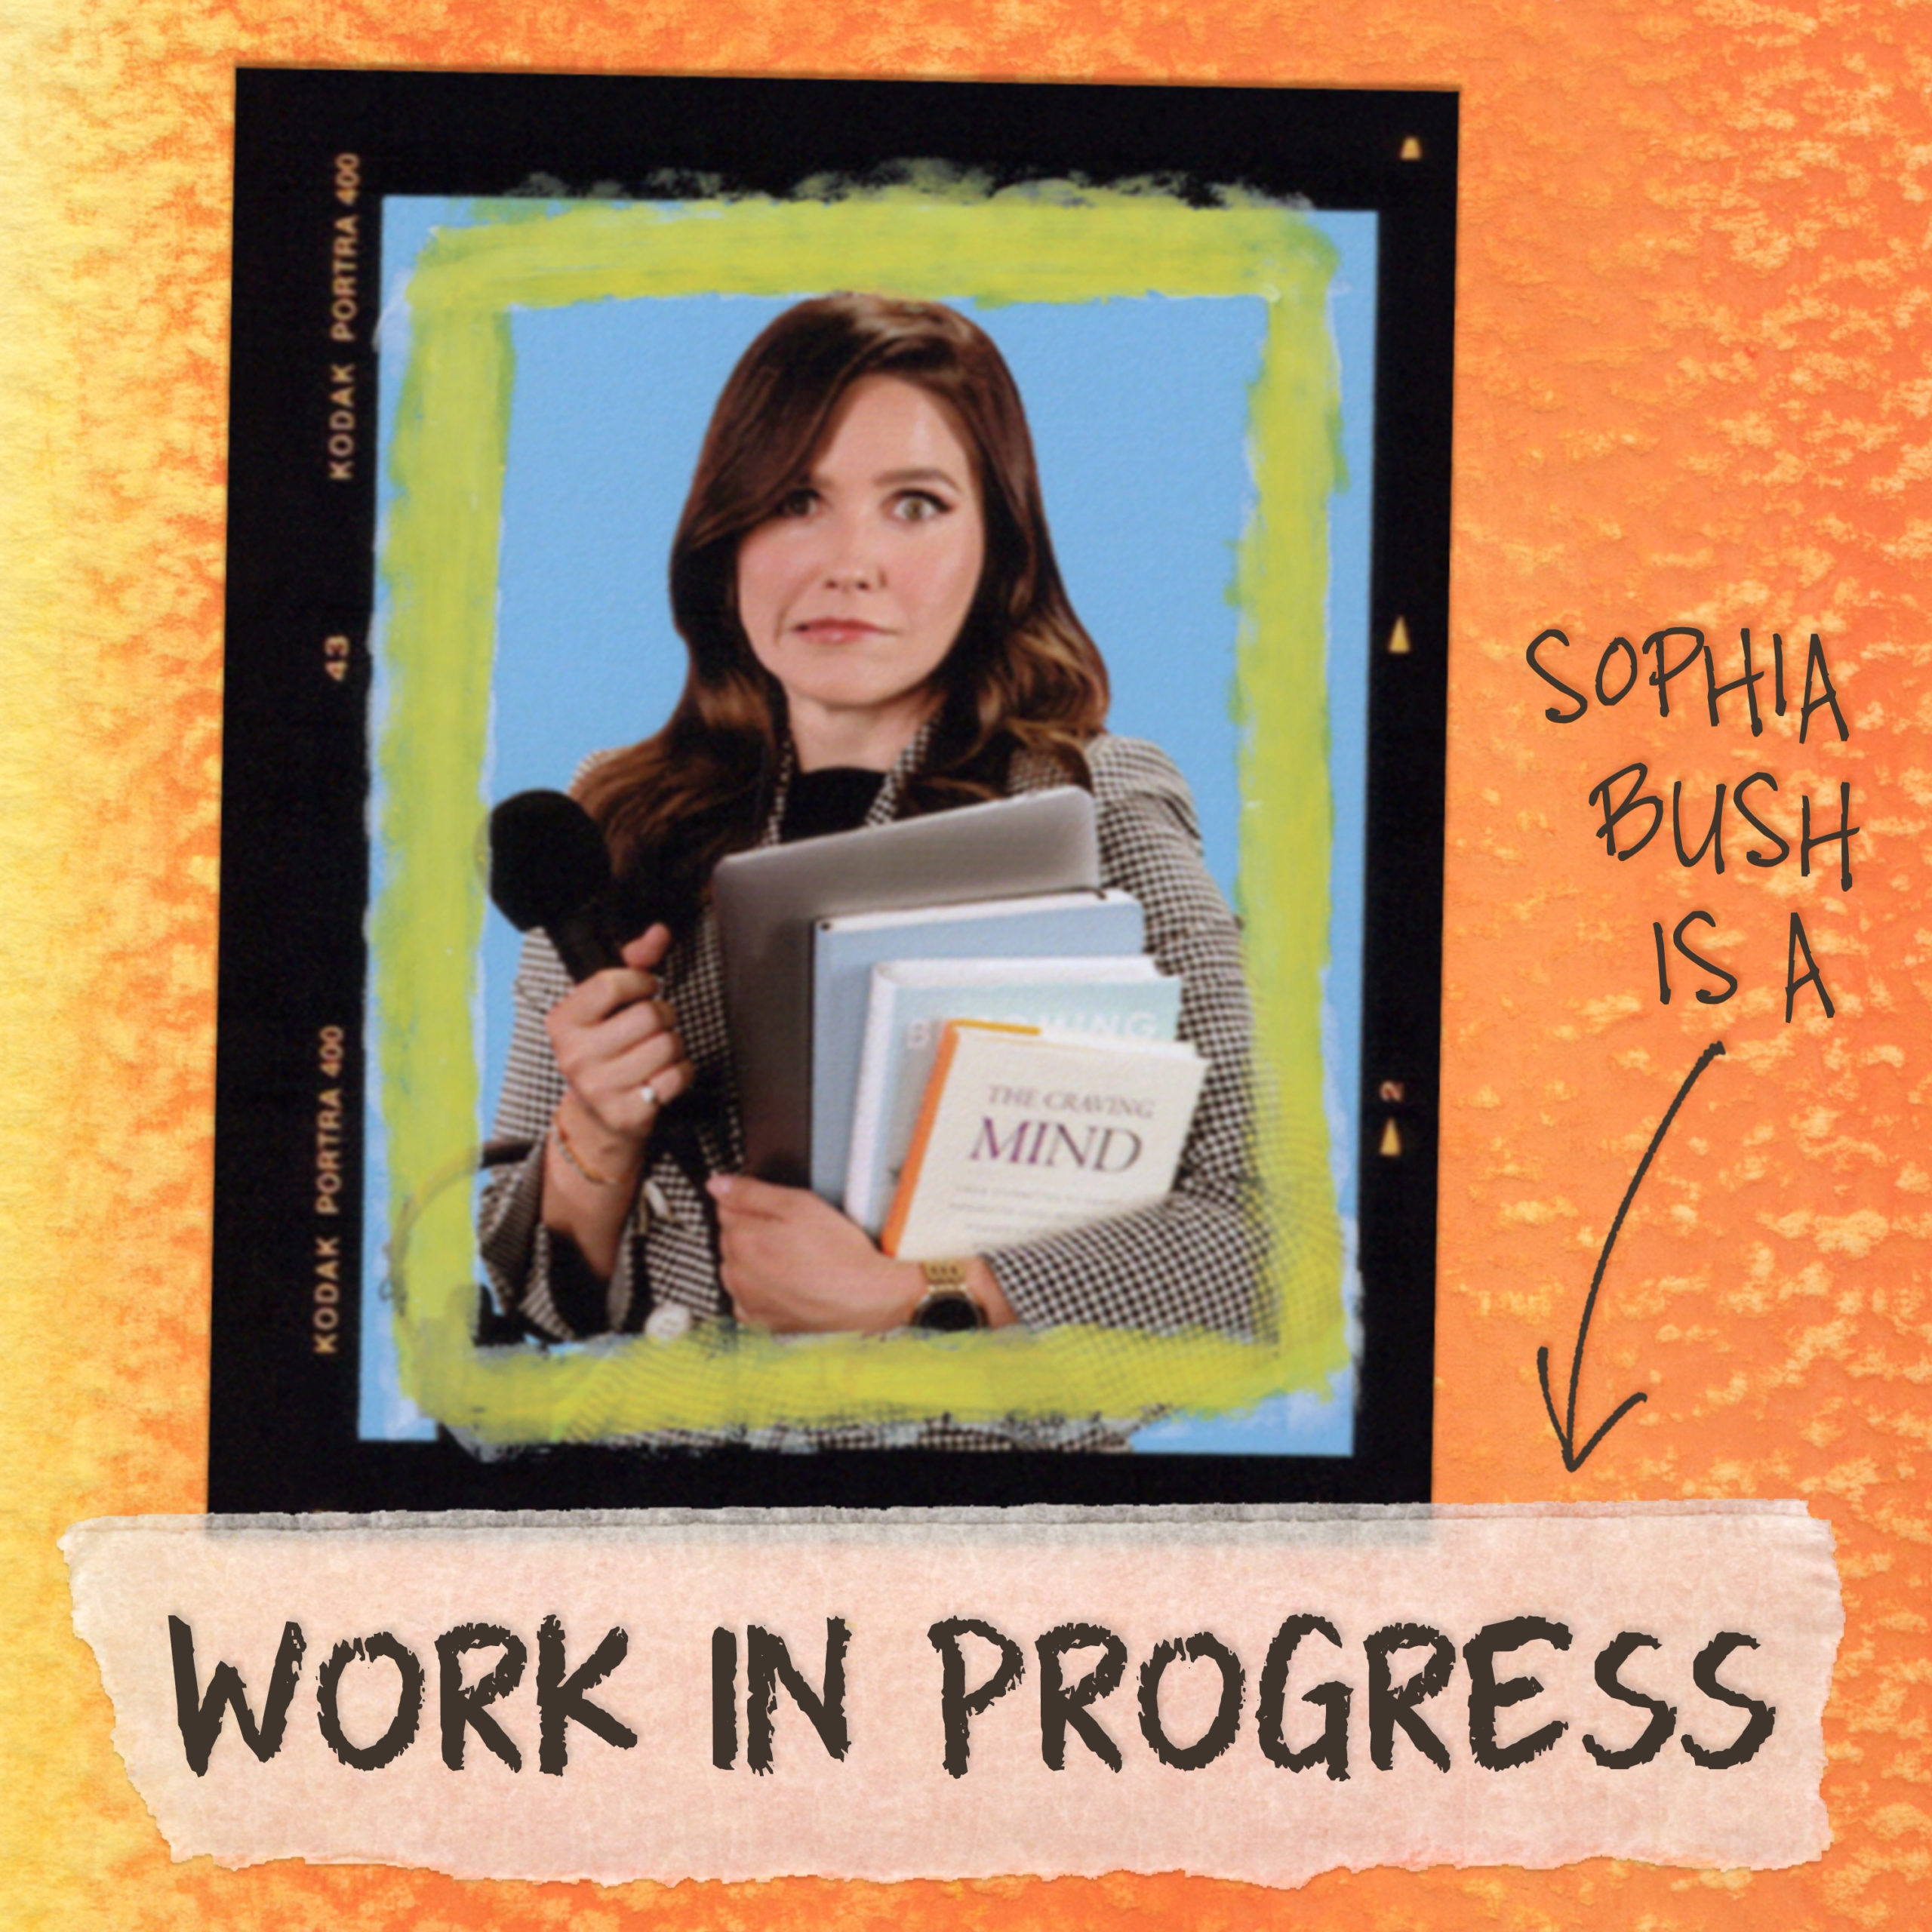 Bay Street Bull Podcasts Recommendation Work in Progress with Sophia Bush